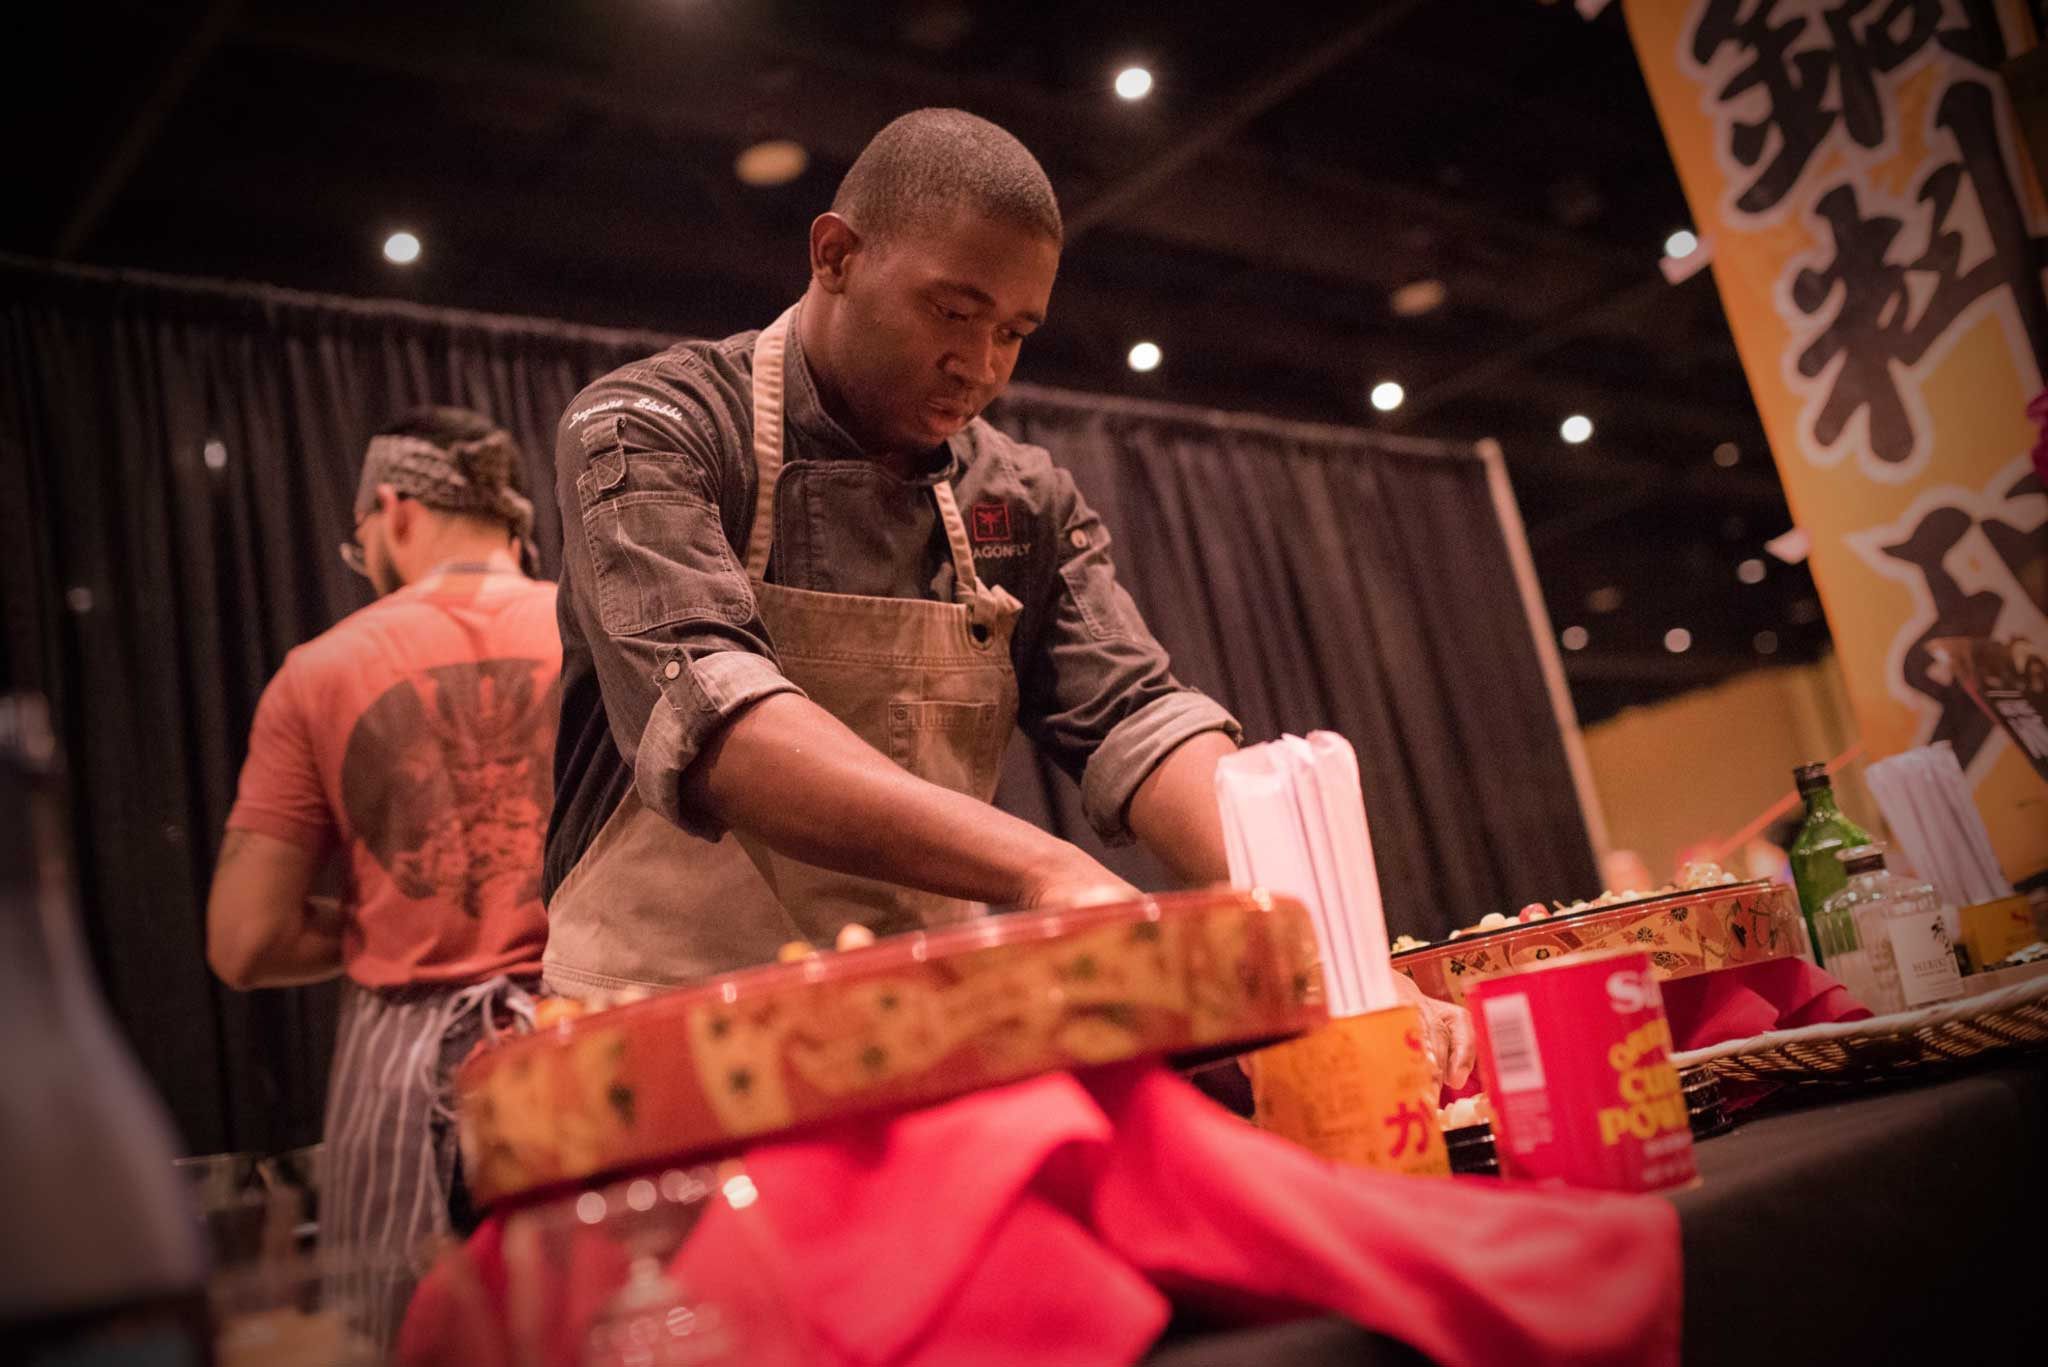 Chef DQ of Dragonfly Robata Grill & Sushi (Sand Lake Road, Orlando - Dr. Phillips) at Taste Central Florida 2017.